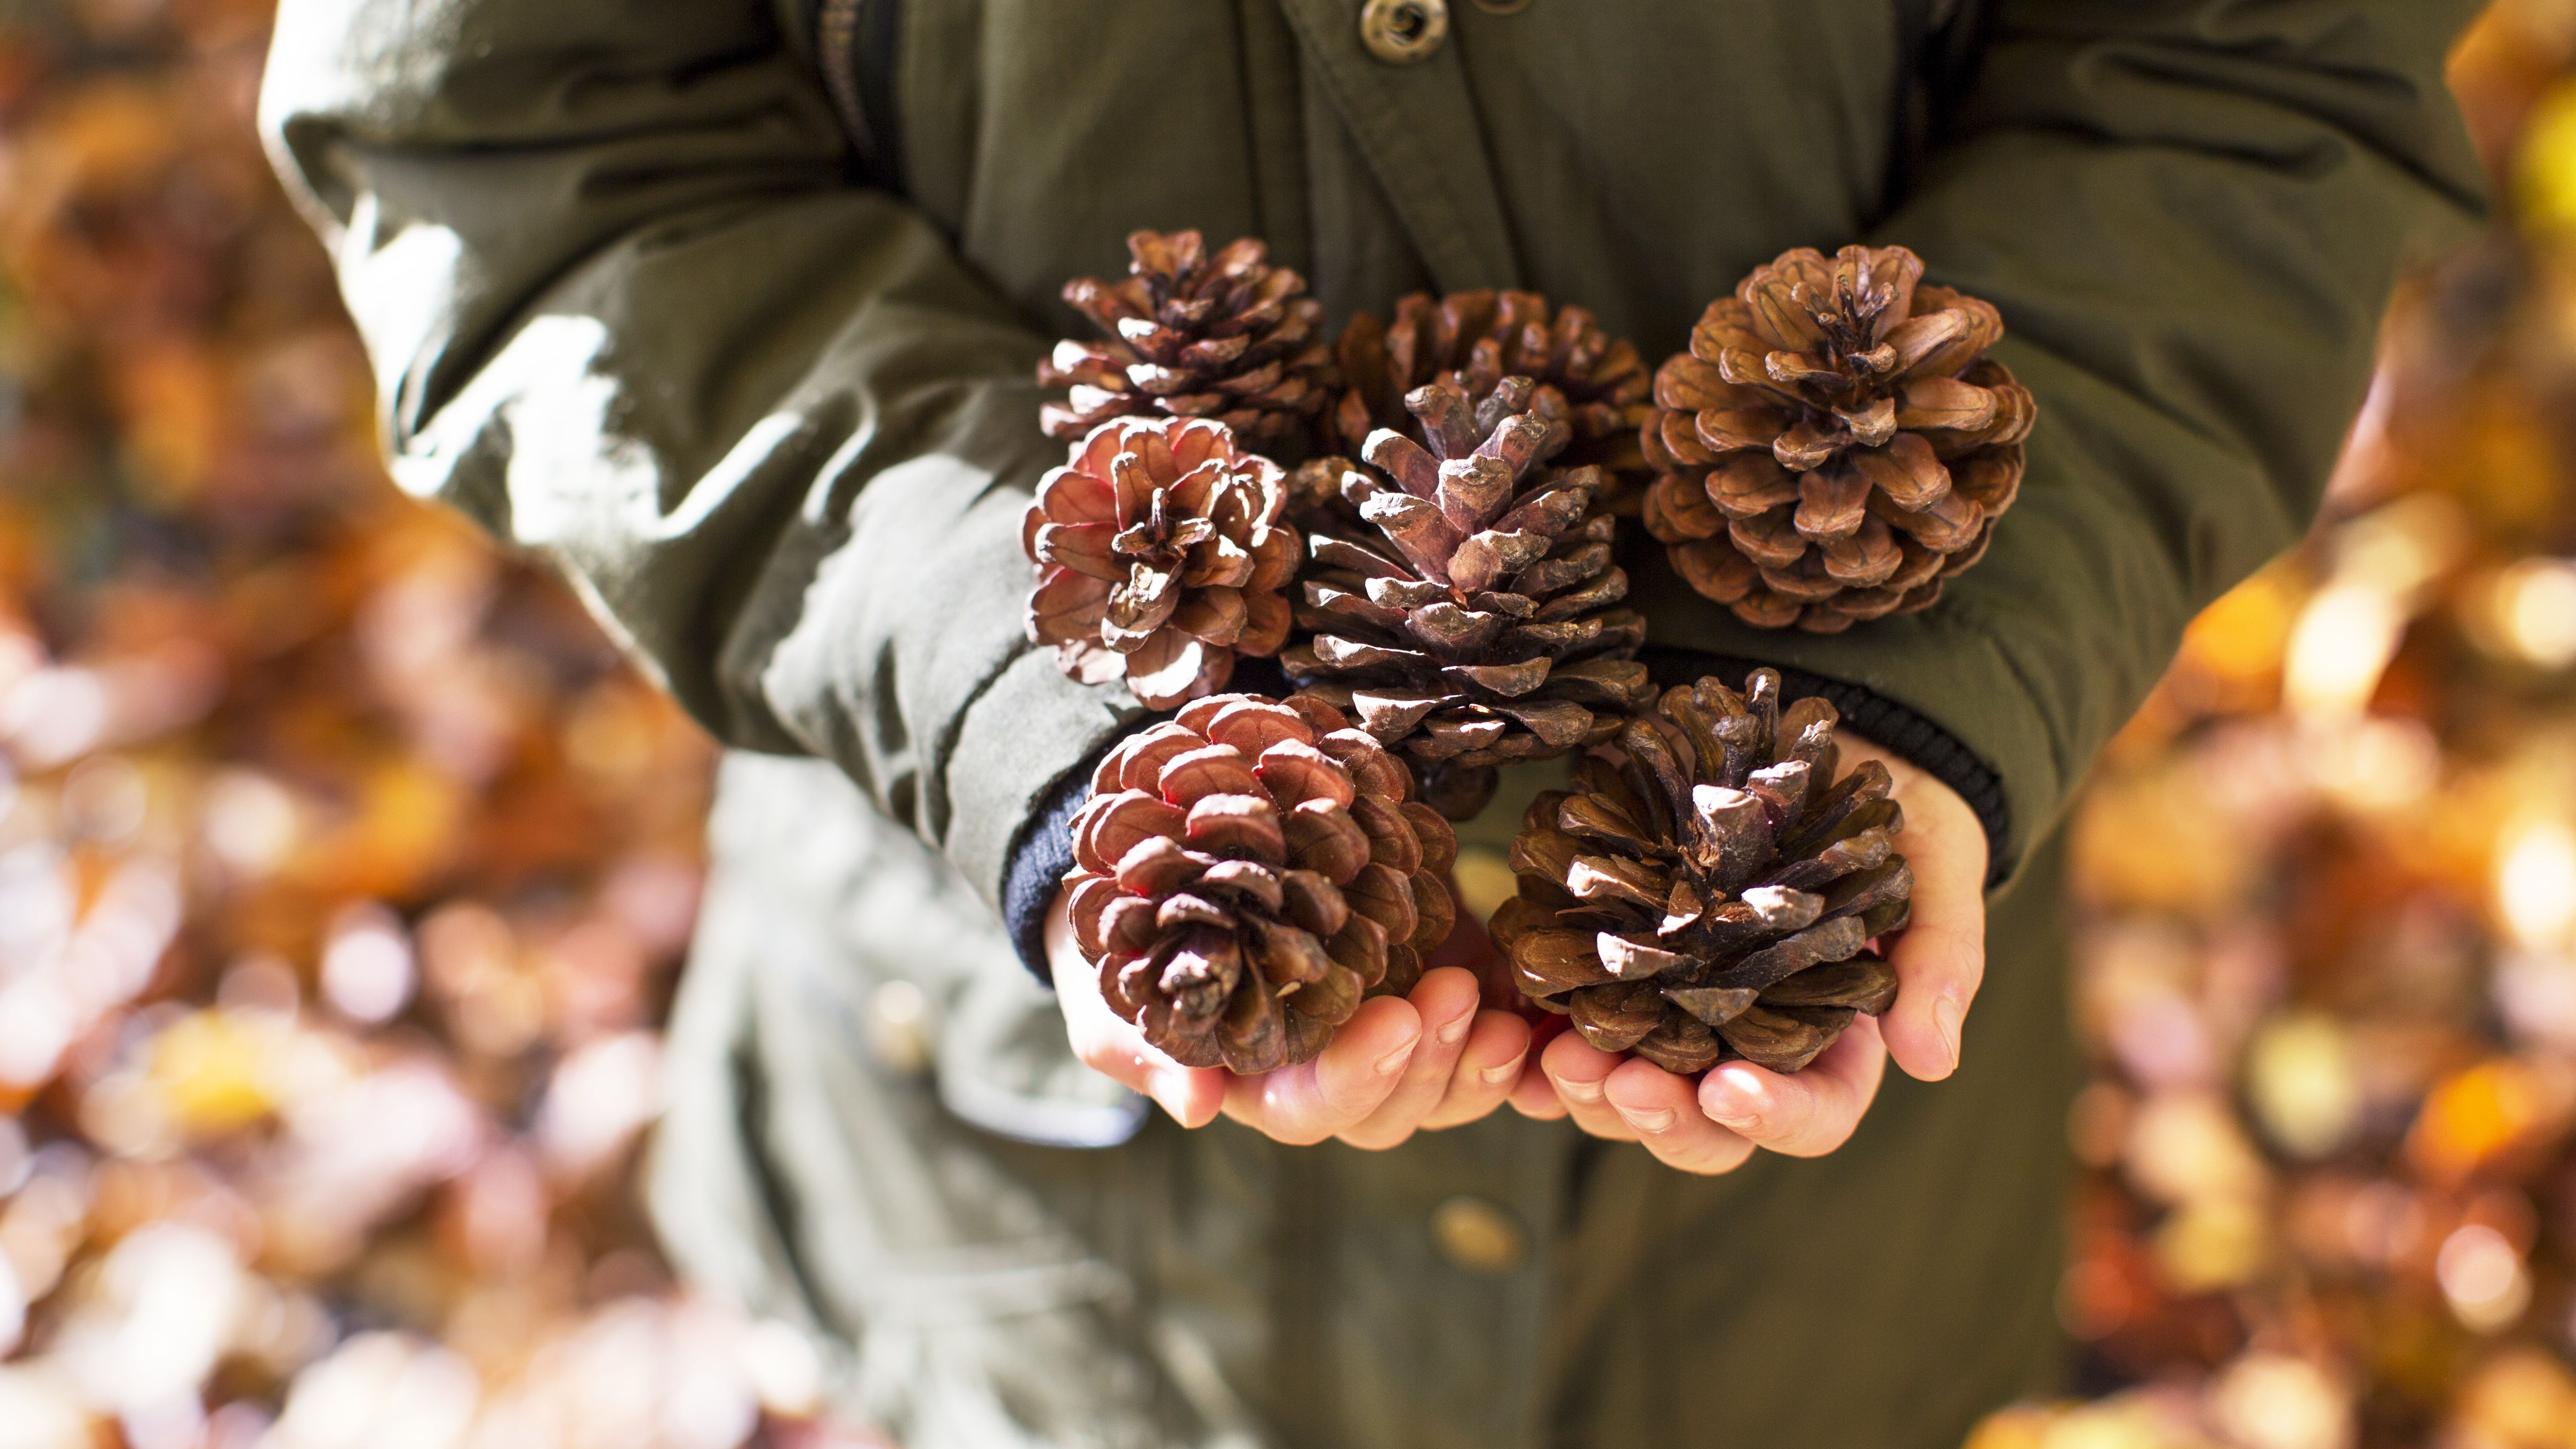 How To Make Pine Cone Fire Starters